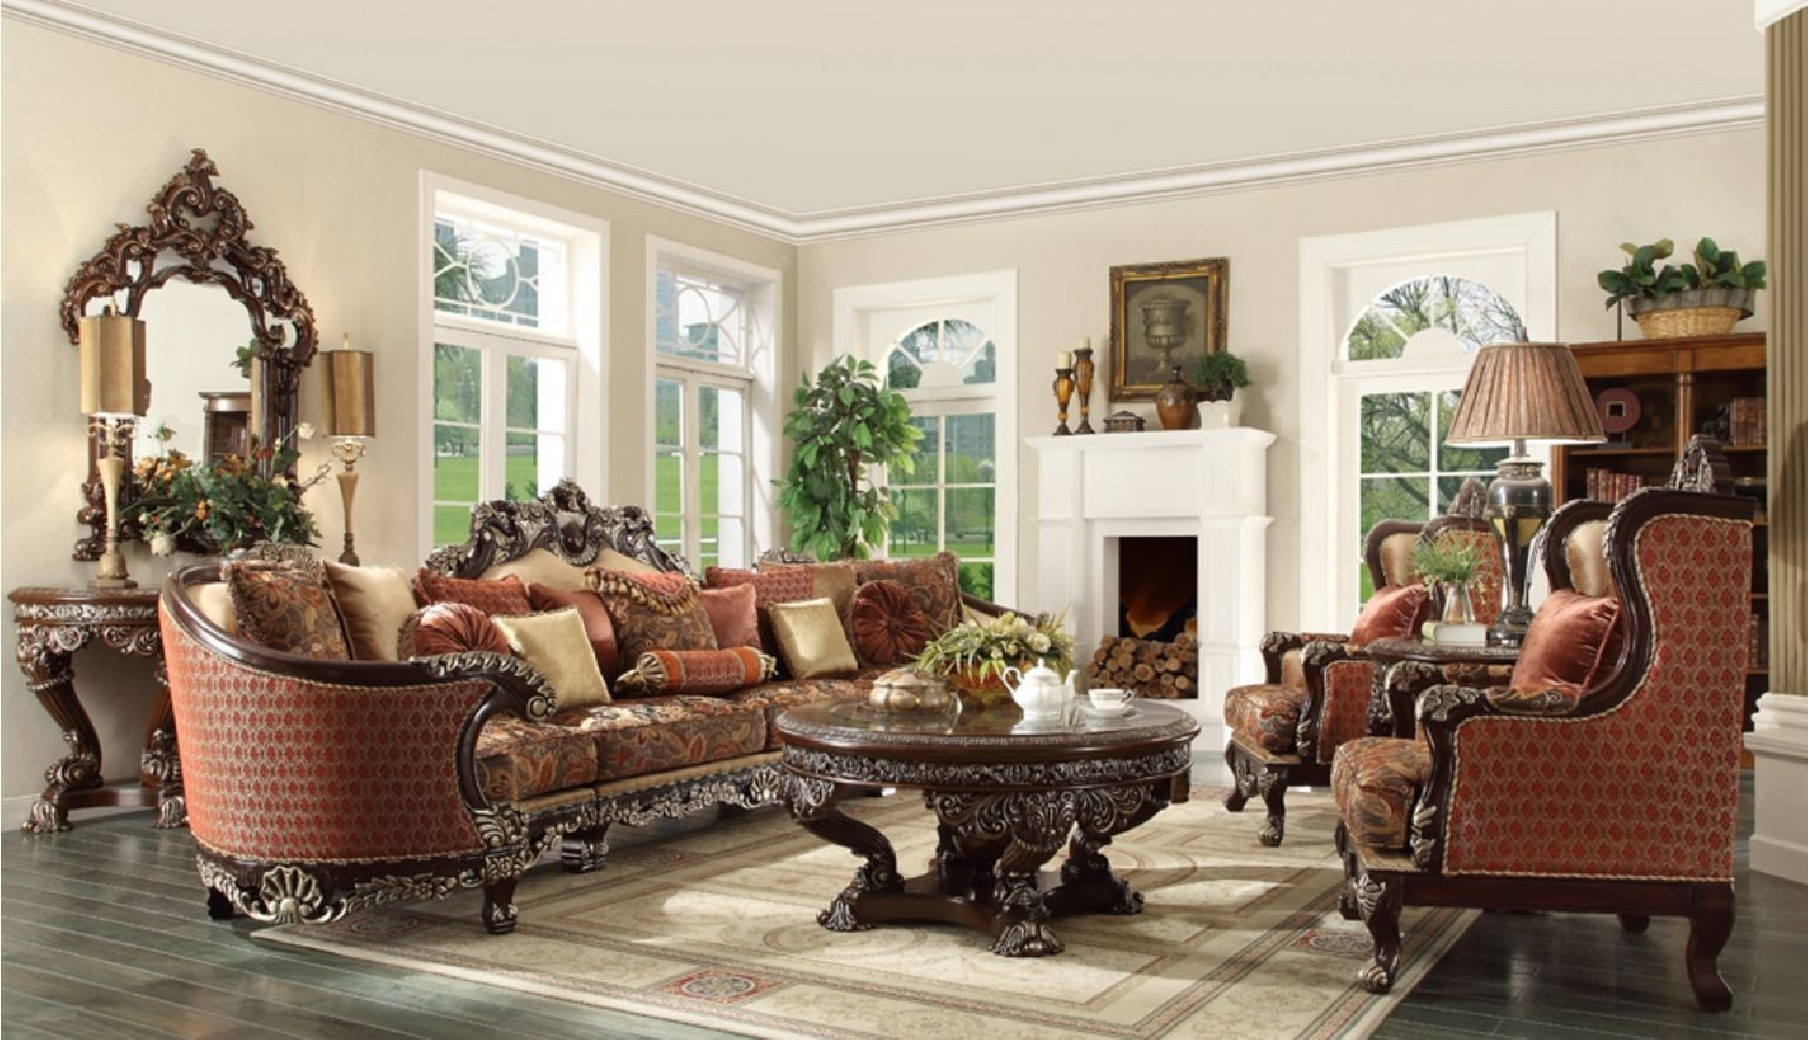 Hd 111 Homey Design Upholstery Living Room Set Victorian European Classic Design Sofa Set